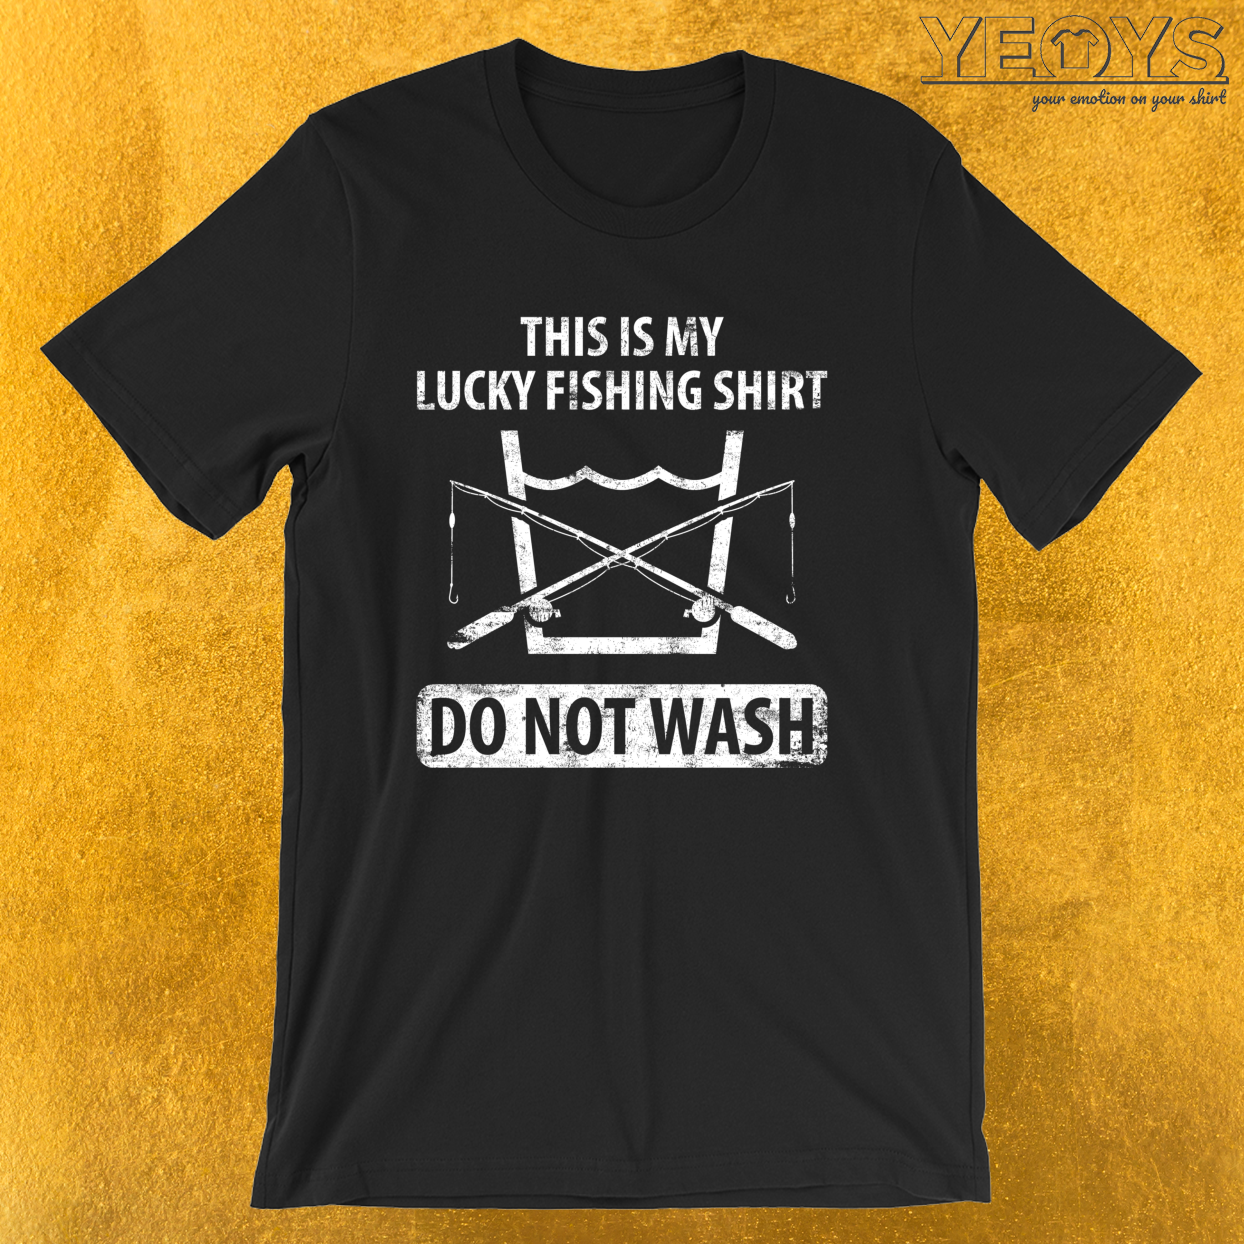 This Is My Lucky Fishing Shirt Do Not Wash – Funny Fishing Tee